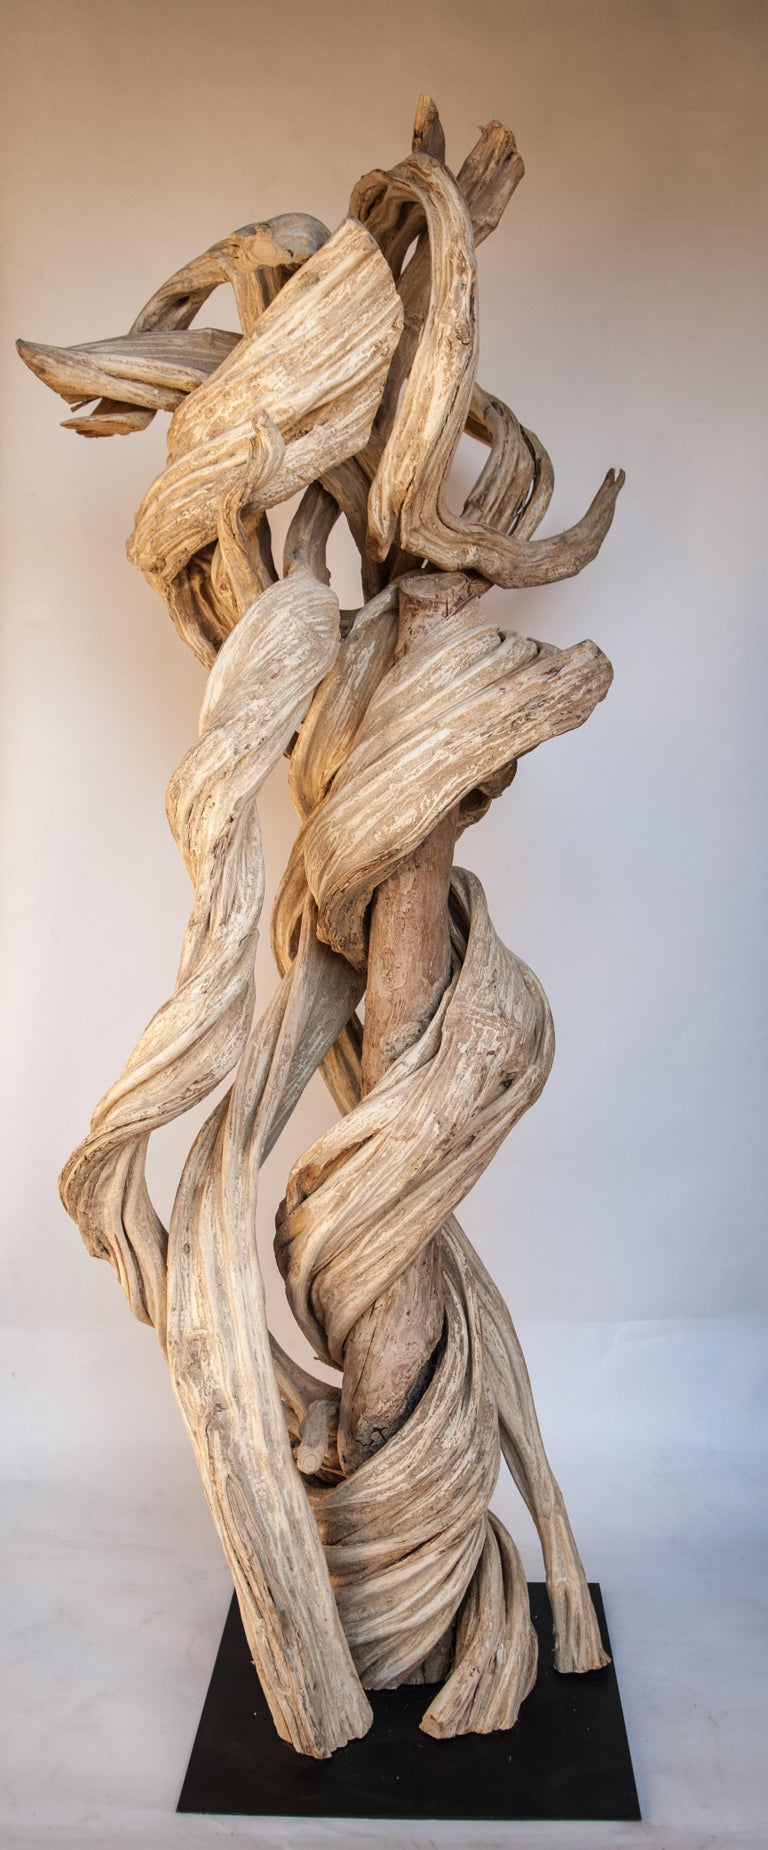 Liana Vine sculpture on a metal stand. 76 inches tall from Thailand.